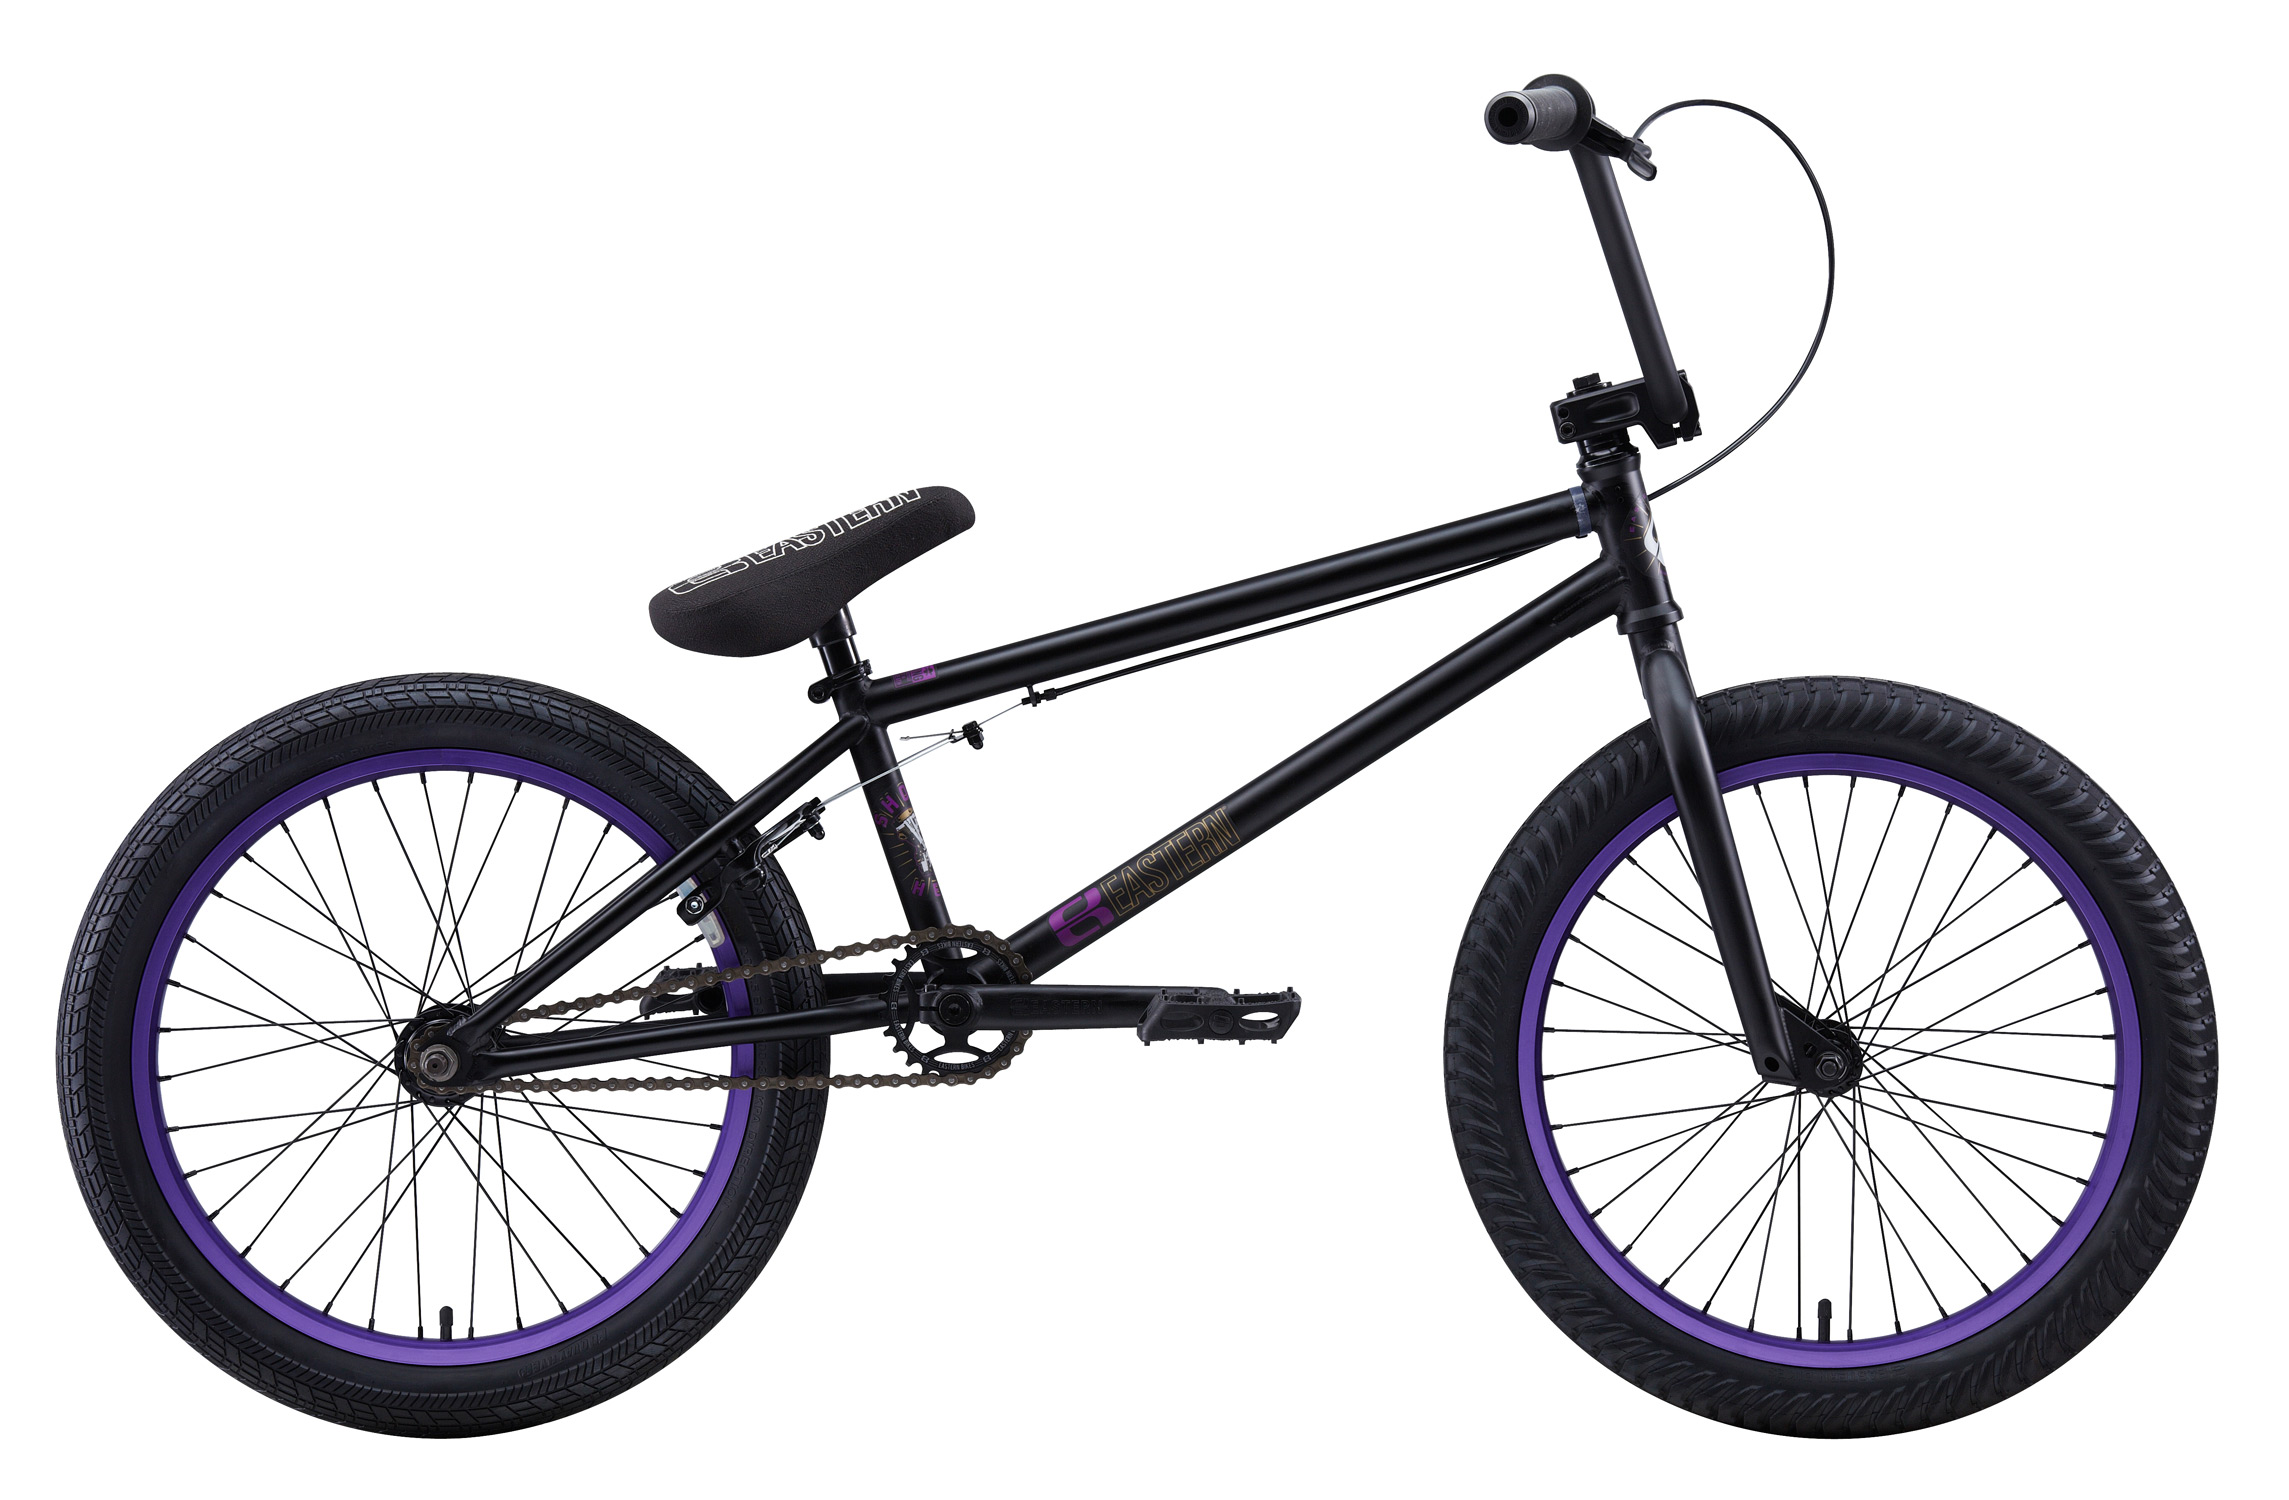 "BMX Key Features of the Eastern Shovelhead BMX Bike: WEIGHT: 24.9 lbs TOP TUBE SIZE: 21"" COLORS: Matte Green/Gold, Matte Black/Purple GEARING: 25/9 Micro-drive FRAME: Full 4130 Chromoly Shovelhead frame, Integrated headset, mid BB and holes for replaceable gyro tabs.***** 78mm wide BB to allow for wider tire clearance. Eastern Promise: lifetime warranty*, lifetime upgrade policy** FORK: Eastern Full 4130 Chromoly, Tapered Legs & Hangfree Dropout Design, 35mm Offset BARS: Eastern FULL 4130 chromoly 8.5""x 28.5"" w/ 2mm Wall Thickness on Grip Tube & 1.2mm Thickness on Crossbar, 1"" Upsweep, 12"" Backsweep HEADSET: Sealed Bearing 45/45 Integrated BB: Sealed Bearing, Mid Bottom Bracket PEDALS: Eastern Crown pedals GRIPS: Eastern Truffle Grip STEM: Eastern Forged Alloy Frontload SPROCKET: Eastern Phorcys 25T 6061 Alloy CRANKS: Eastern 175mm, tubular chromoly heattreated 3pc. cranks w/ 8 spline spindle SEAT: Eastern logo 1pc. seat and alloy post combo, Durable Nylon Cover, and Stitched Logo SEATPOST: Alloy post included with seat TIRES: FRONT - Eastern Curb Monkey 20"" x 2.3"" OEM REAR - Eastern Fuquay Flyer 20""x 2.3"" OEM FRONT HUB: Sealed Bearing, 36 hole Alloy Shell, 3/8"" Chromoly axle REAR HUB: Fully Sealed 36 hole cassette hub, Forged Alloy Shell, 1pc. 9-tooth chromoly driver, 14mm chromoly axle, 5 sealed bearings. RIMS: Double Wall Alloy, 36 Hole REAR BRAKES: Tektro Forged Alloy U-Brake / Straight Cable / Eastern 6061 Forged Lever w/ Hinged Clamp FREEWHEEL: Sealed bearing 9-tooth 1pc. driver CHAIN: KMC Z510H SEAT CLAMP: Eastern Slant Forged PEGS: 2 pegs - $321.95"